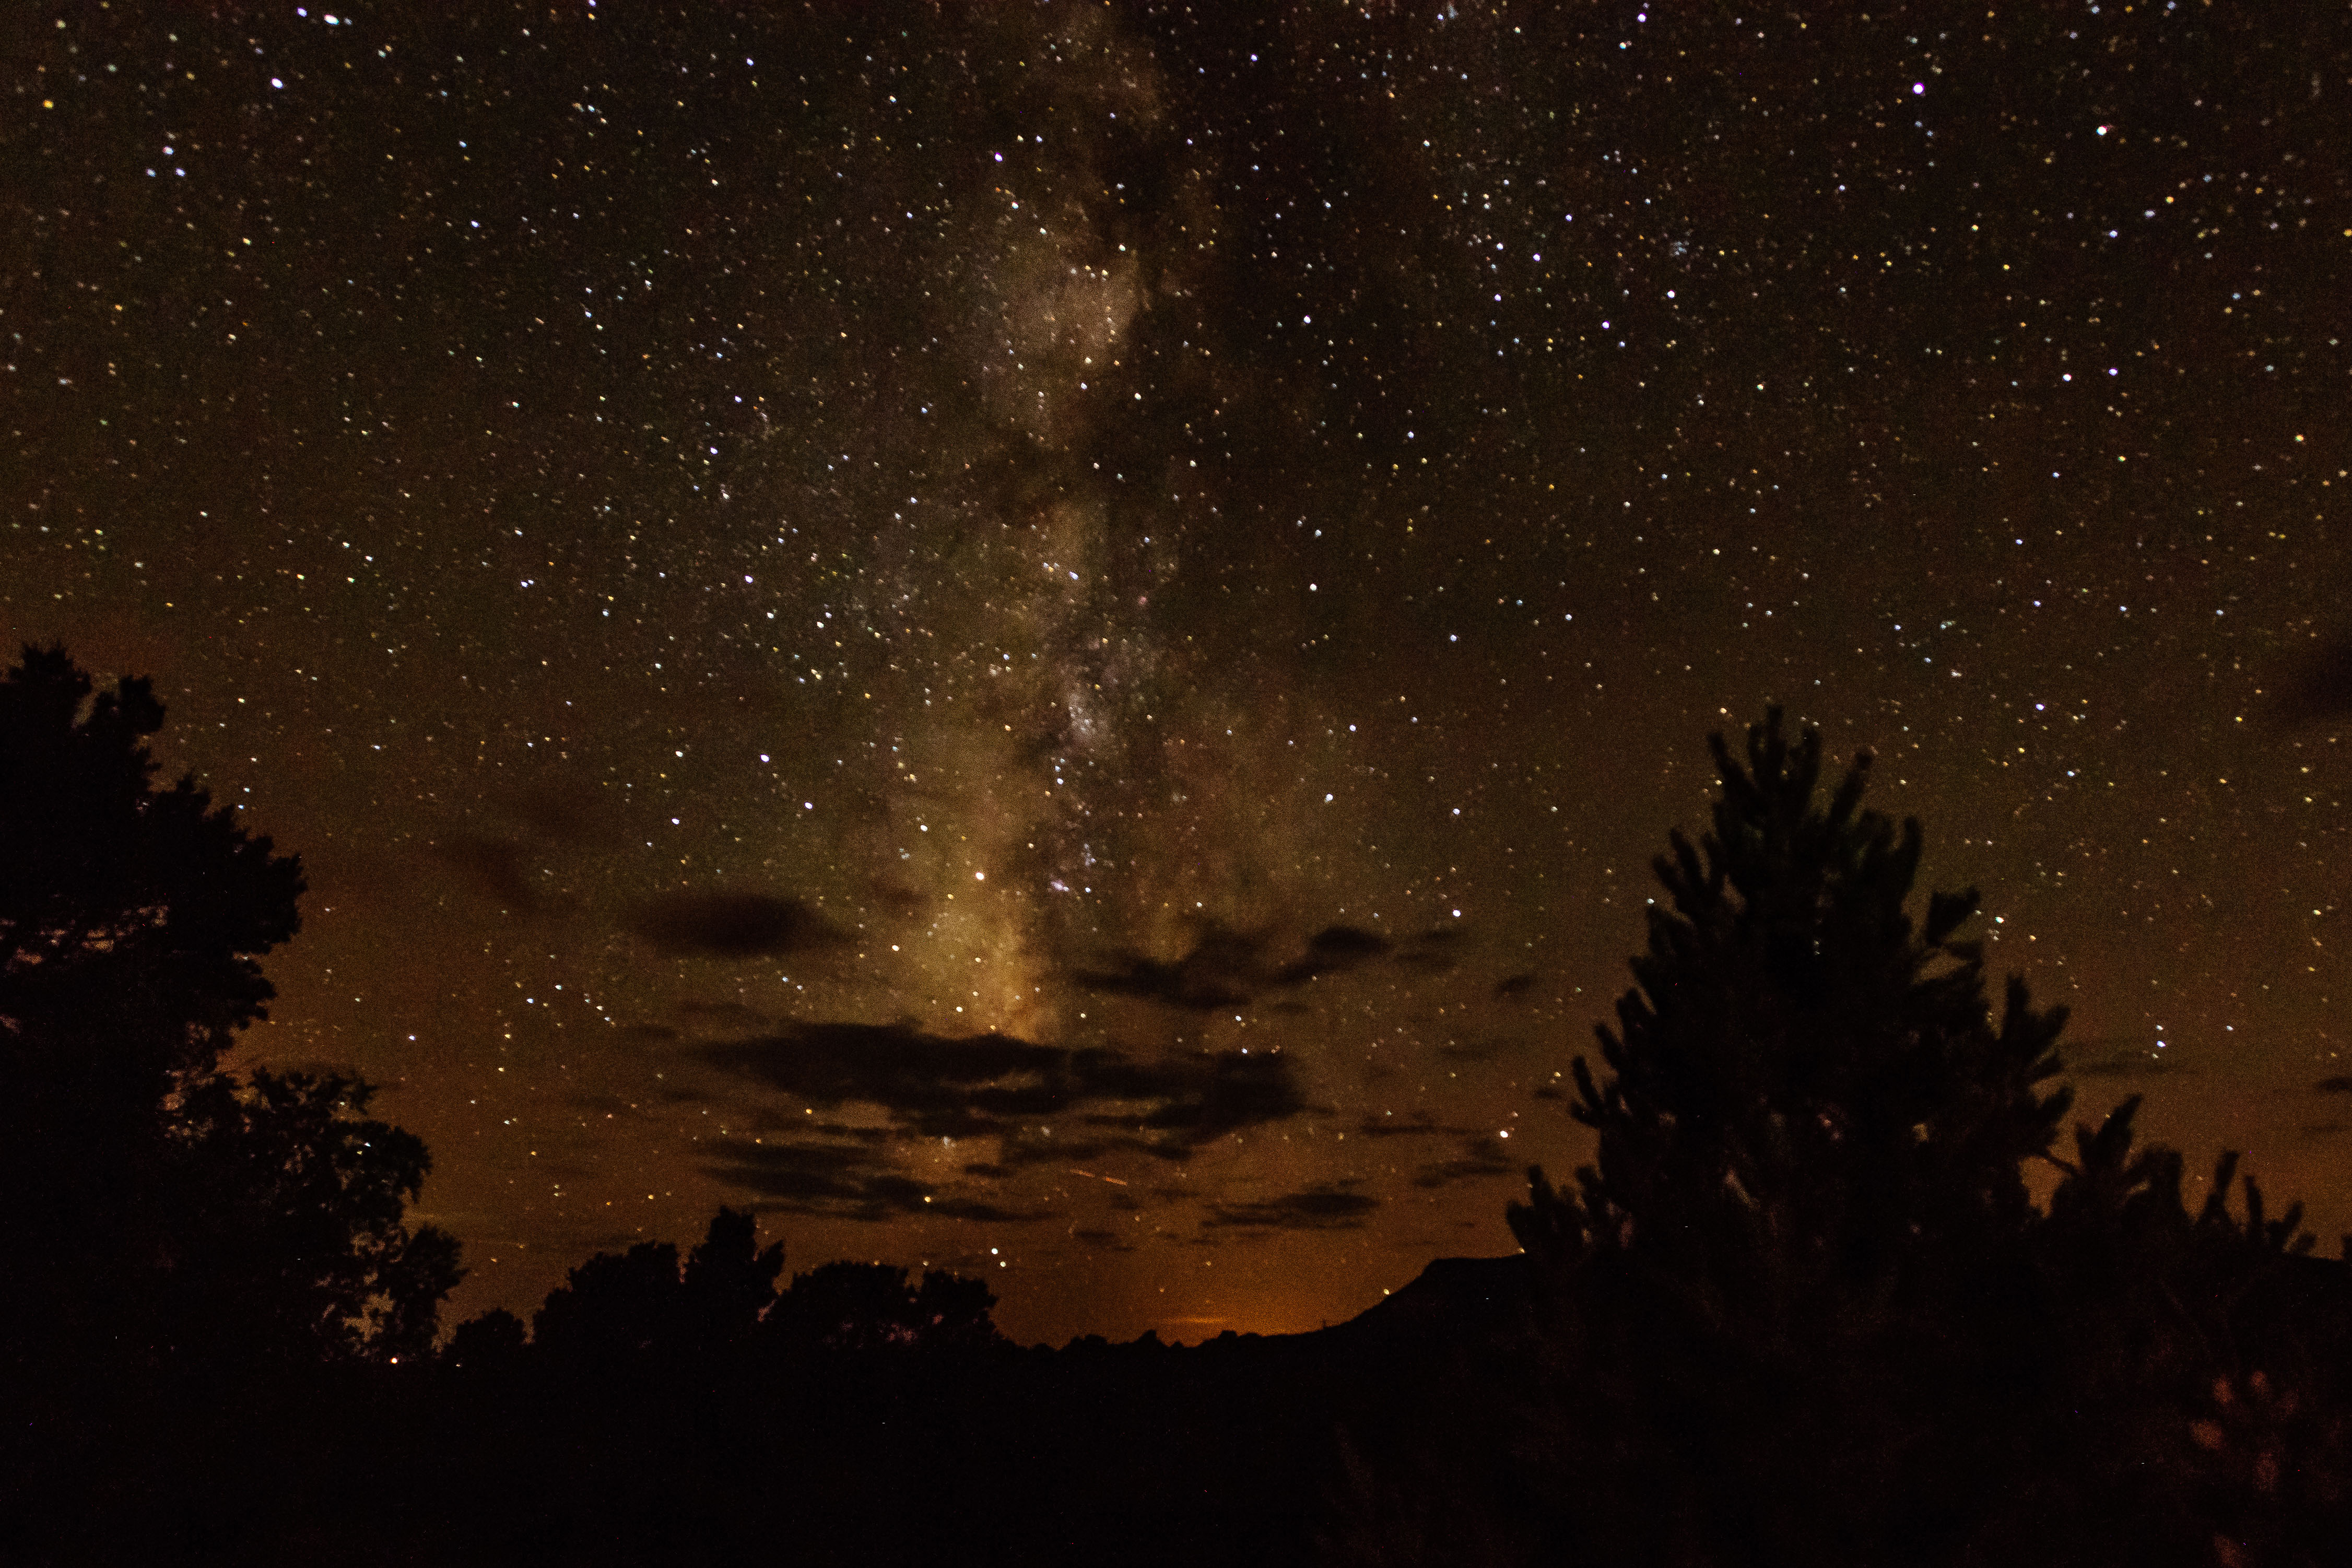 The night sky and Milky Way on night in the early fall at the NRA Whittington Center. [Nikon D3X}